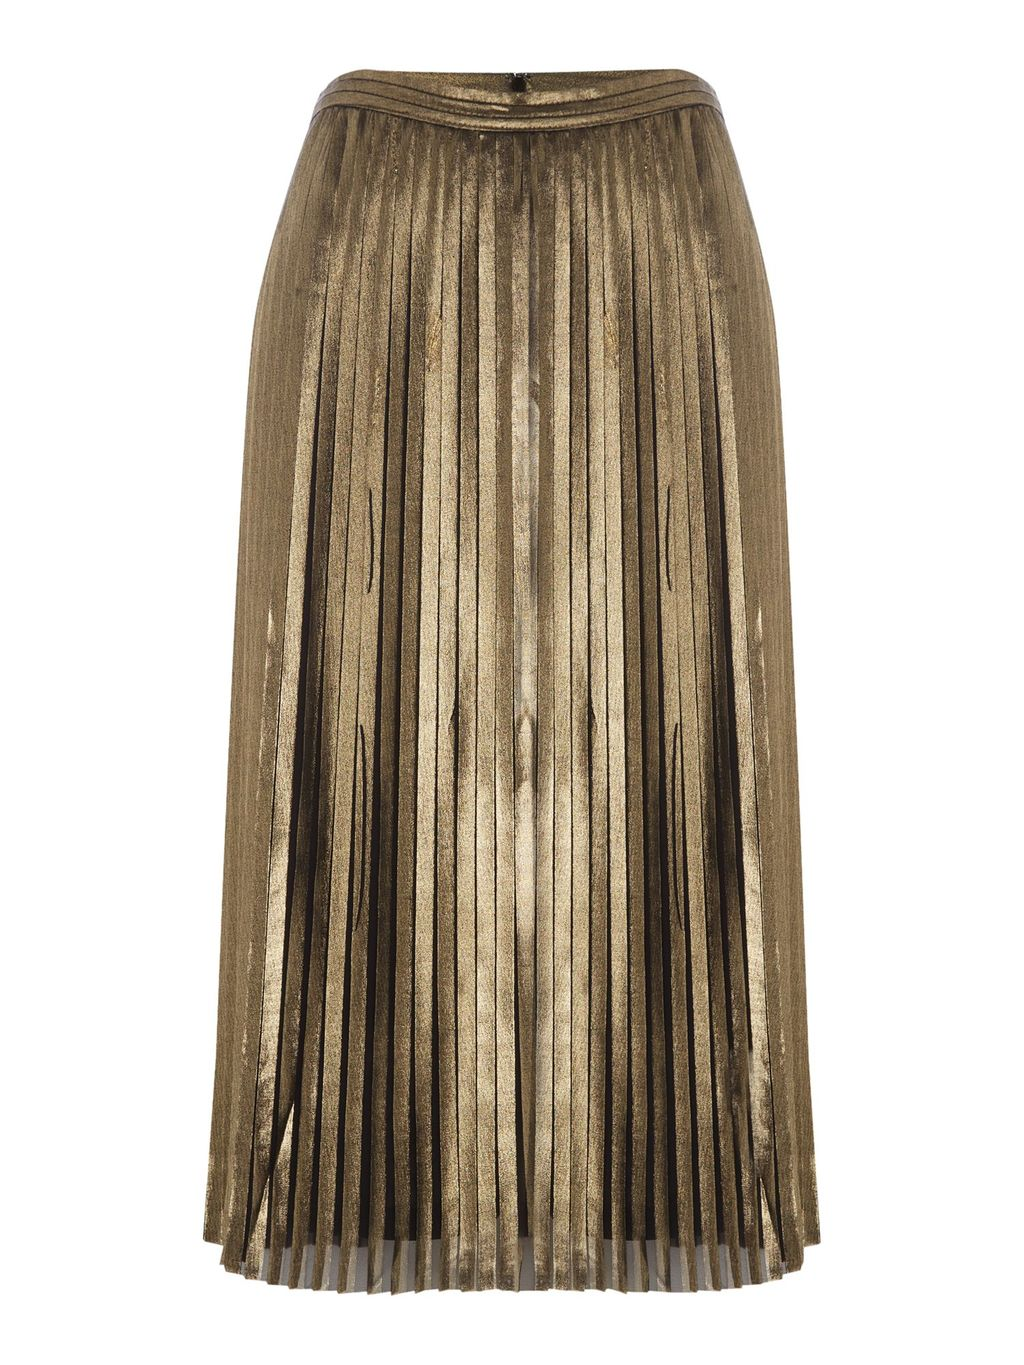 Pleated Metallic Midi Skirt, Black Gold - length: below the knee; pattern: plain; fit: body skimming; style: pleated; waist: mid/regular rise; predominant colour: gold; occasions: evening; fibres: polyester/polyamide - 100%; pattern type: fabric; texture group: woven light midweight; season: a/w 2016